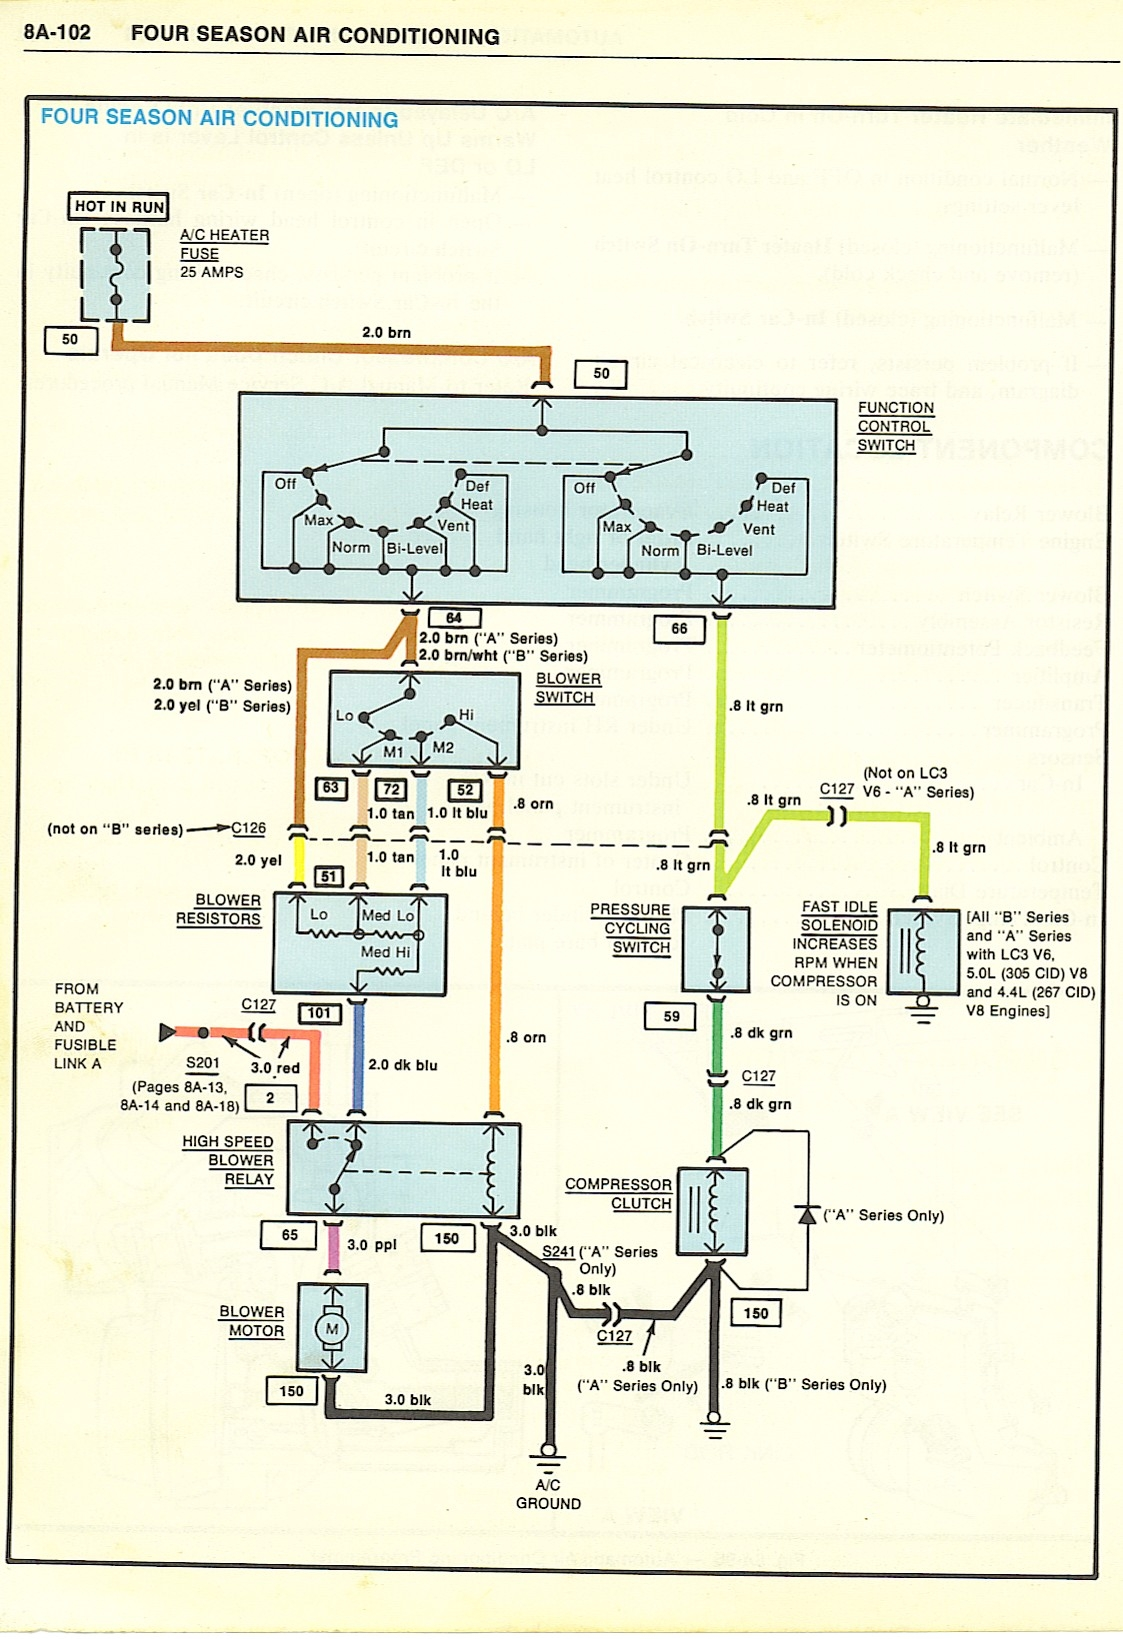 1968 chevelle wiring schematic, 70 chevelle dash gauges, 70 chevelle dash speaker, on 70 chevelle dash wiring schematic